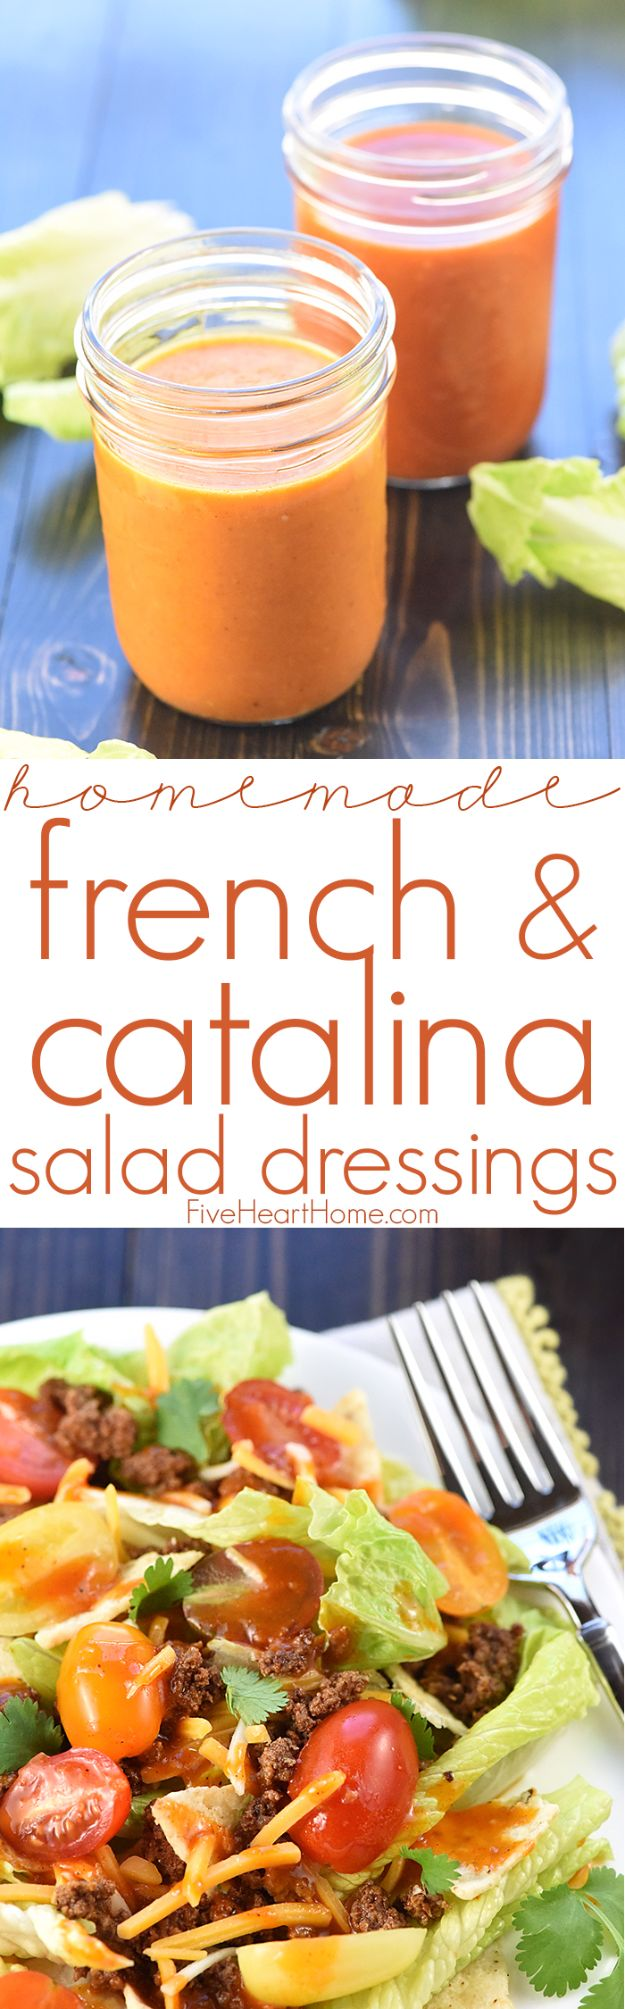 Salad Dressing Recipes - Homemade French & Catalina Salad Dressing - Healthy, Low Calorie and Easy Recipes for Creamy Homeade Dressings - How To Make Vinaigrette, Mango, Greek, Paleo, Balsamic, Ranch, and Italian Copycat Dressings